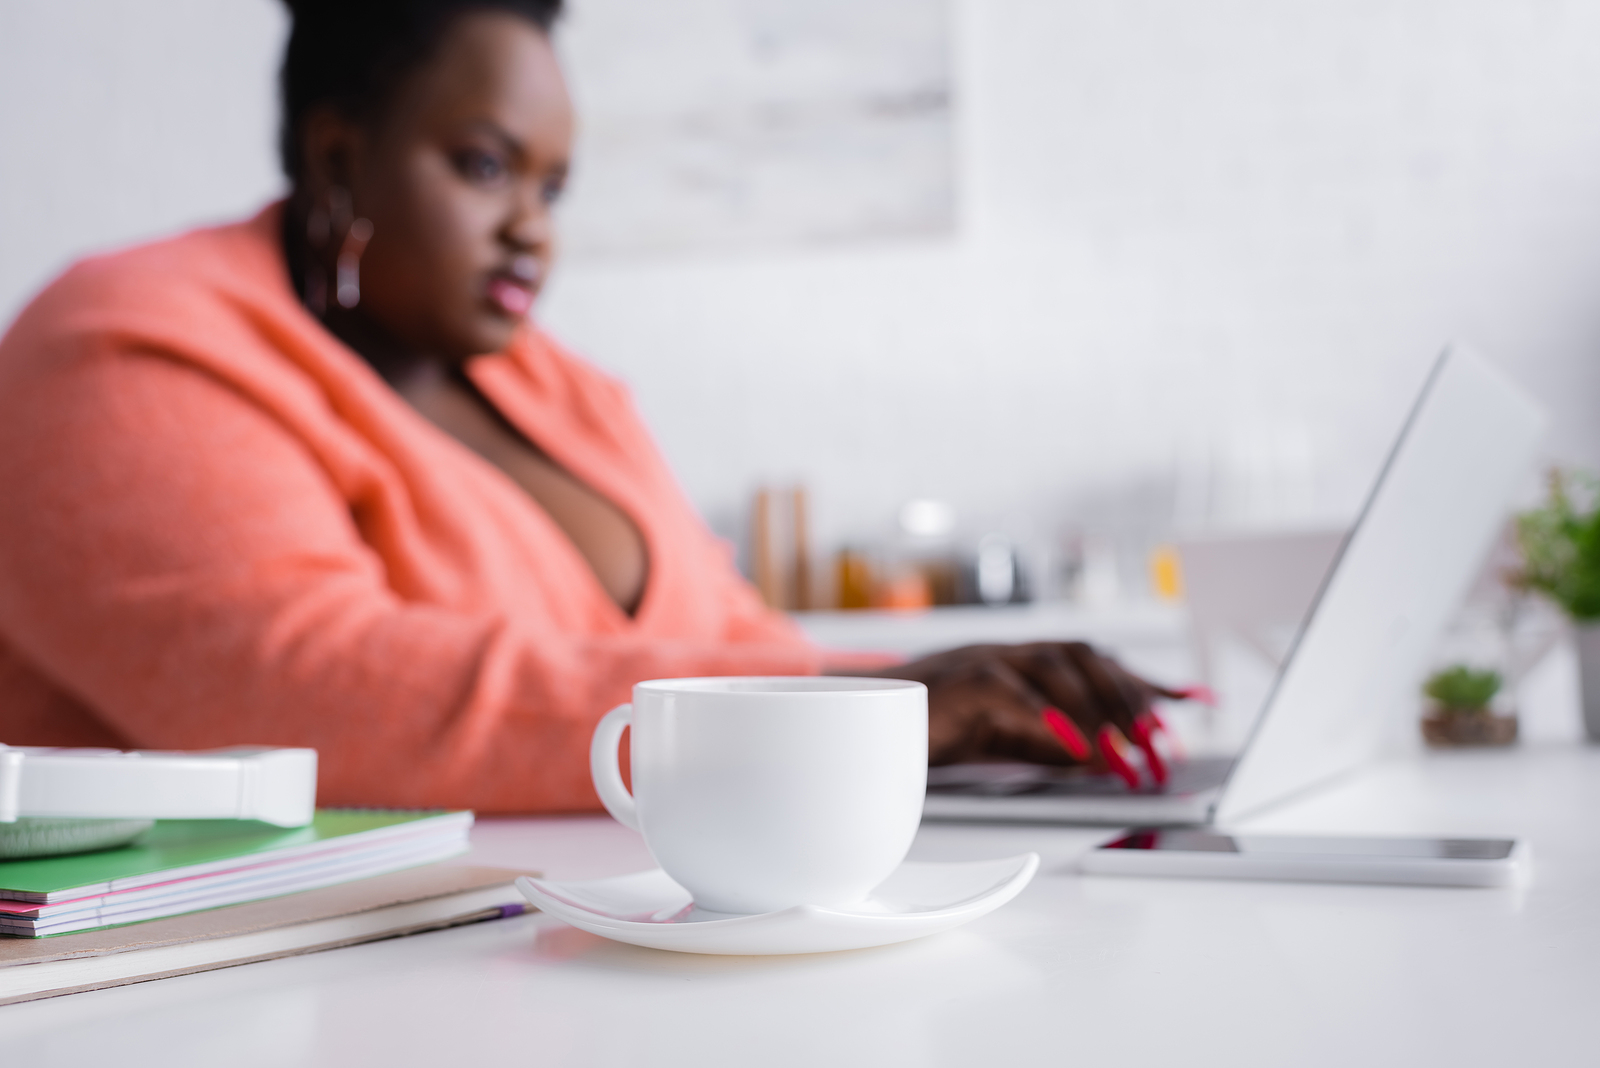 Woman typing on computer in pink sweater. Perfection is impossible. So why have impossible standards? Begin overcoming perfectionism in detroit, mi. Our online therapists who provide anxiety treatment and perfectionism treatment. Learn about how therapy for anxiety and perfectionism today!